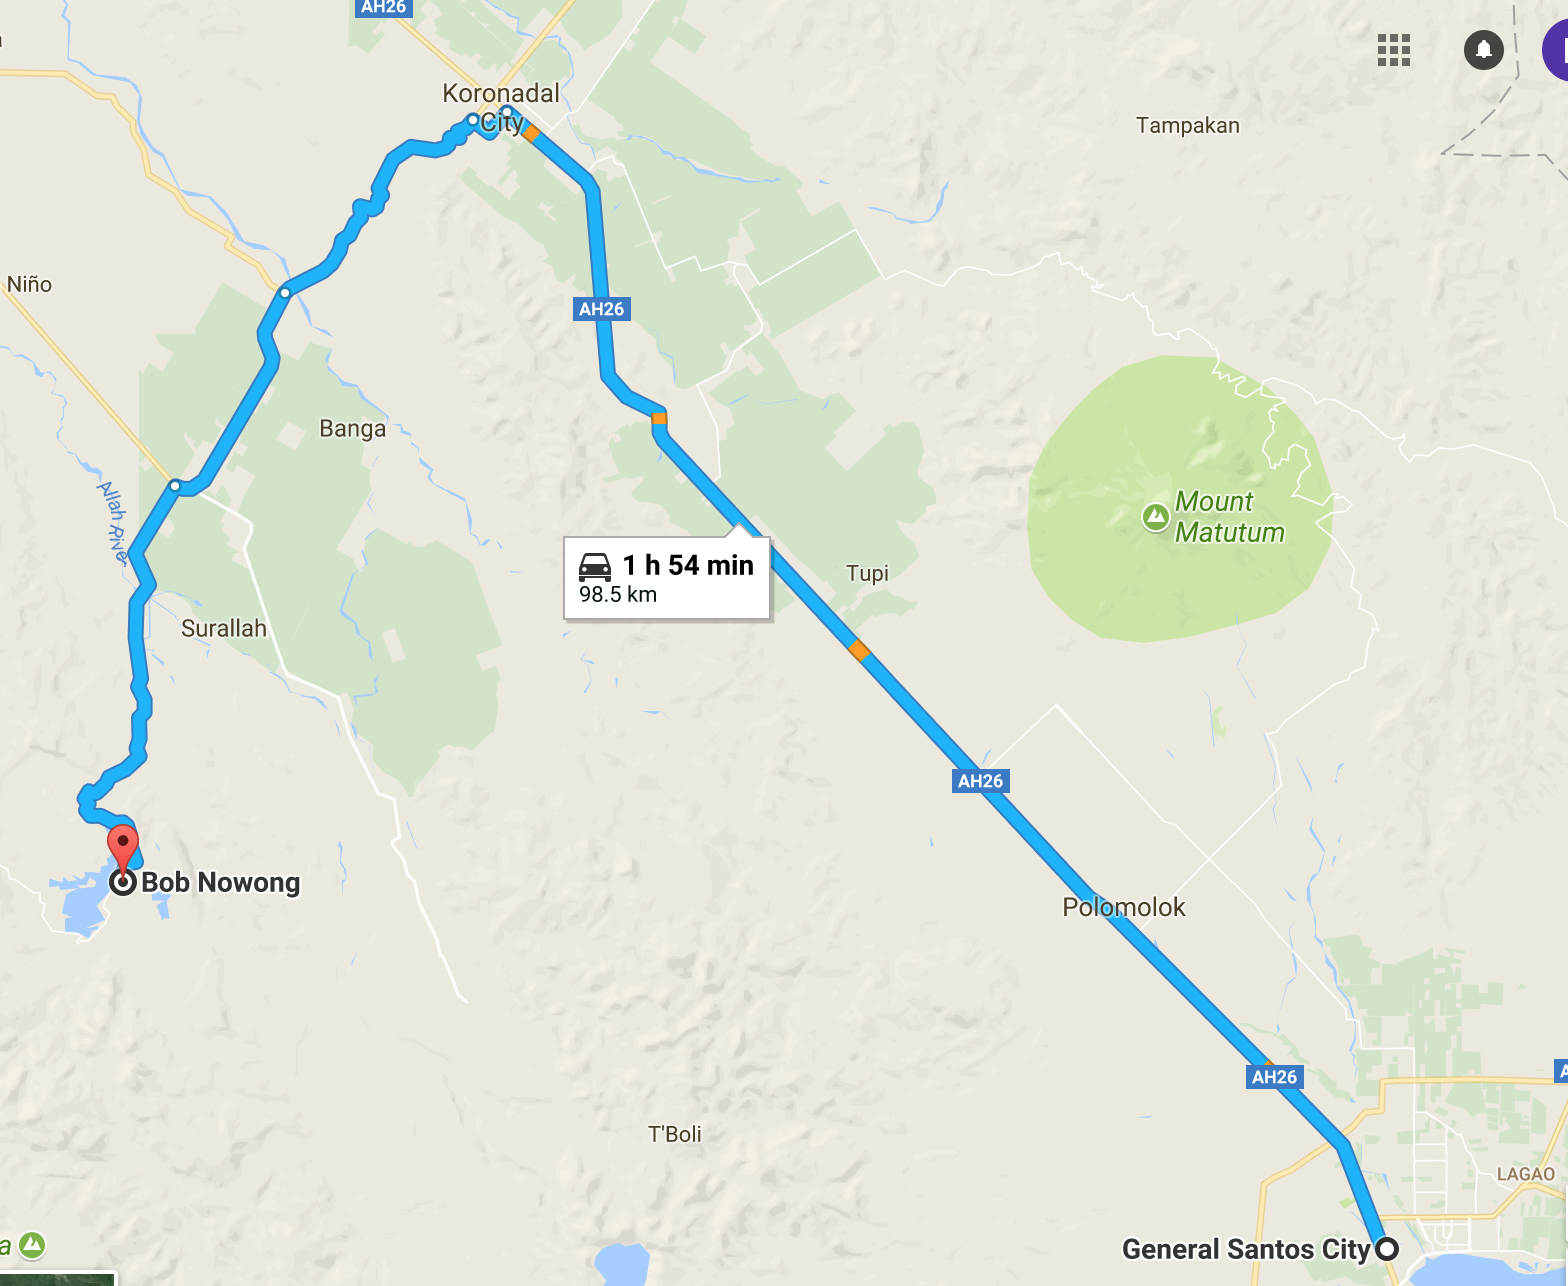 if you are from hearby cities like koronadal and general santos here is the map guide